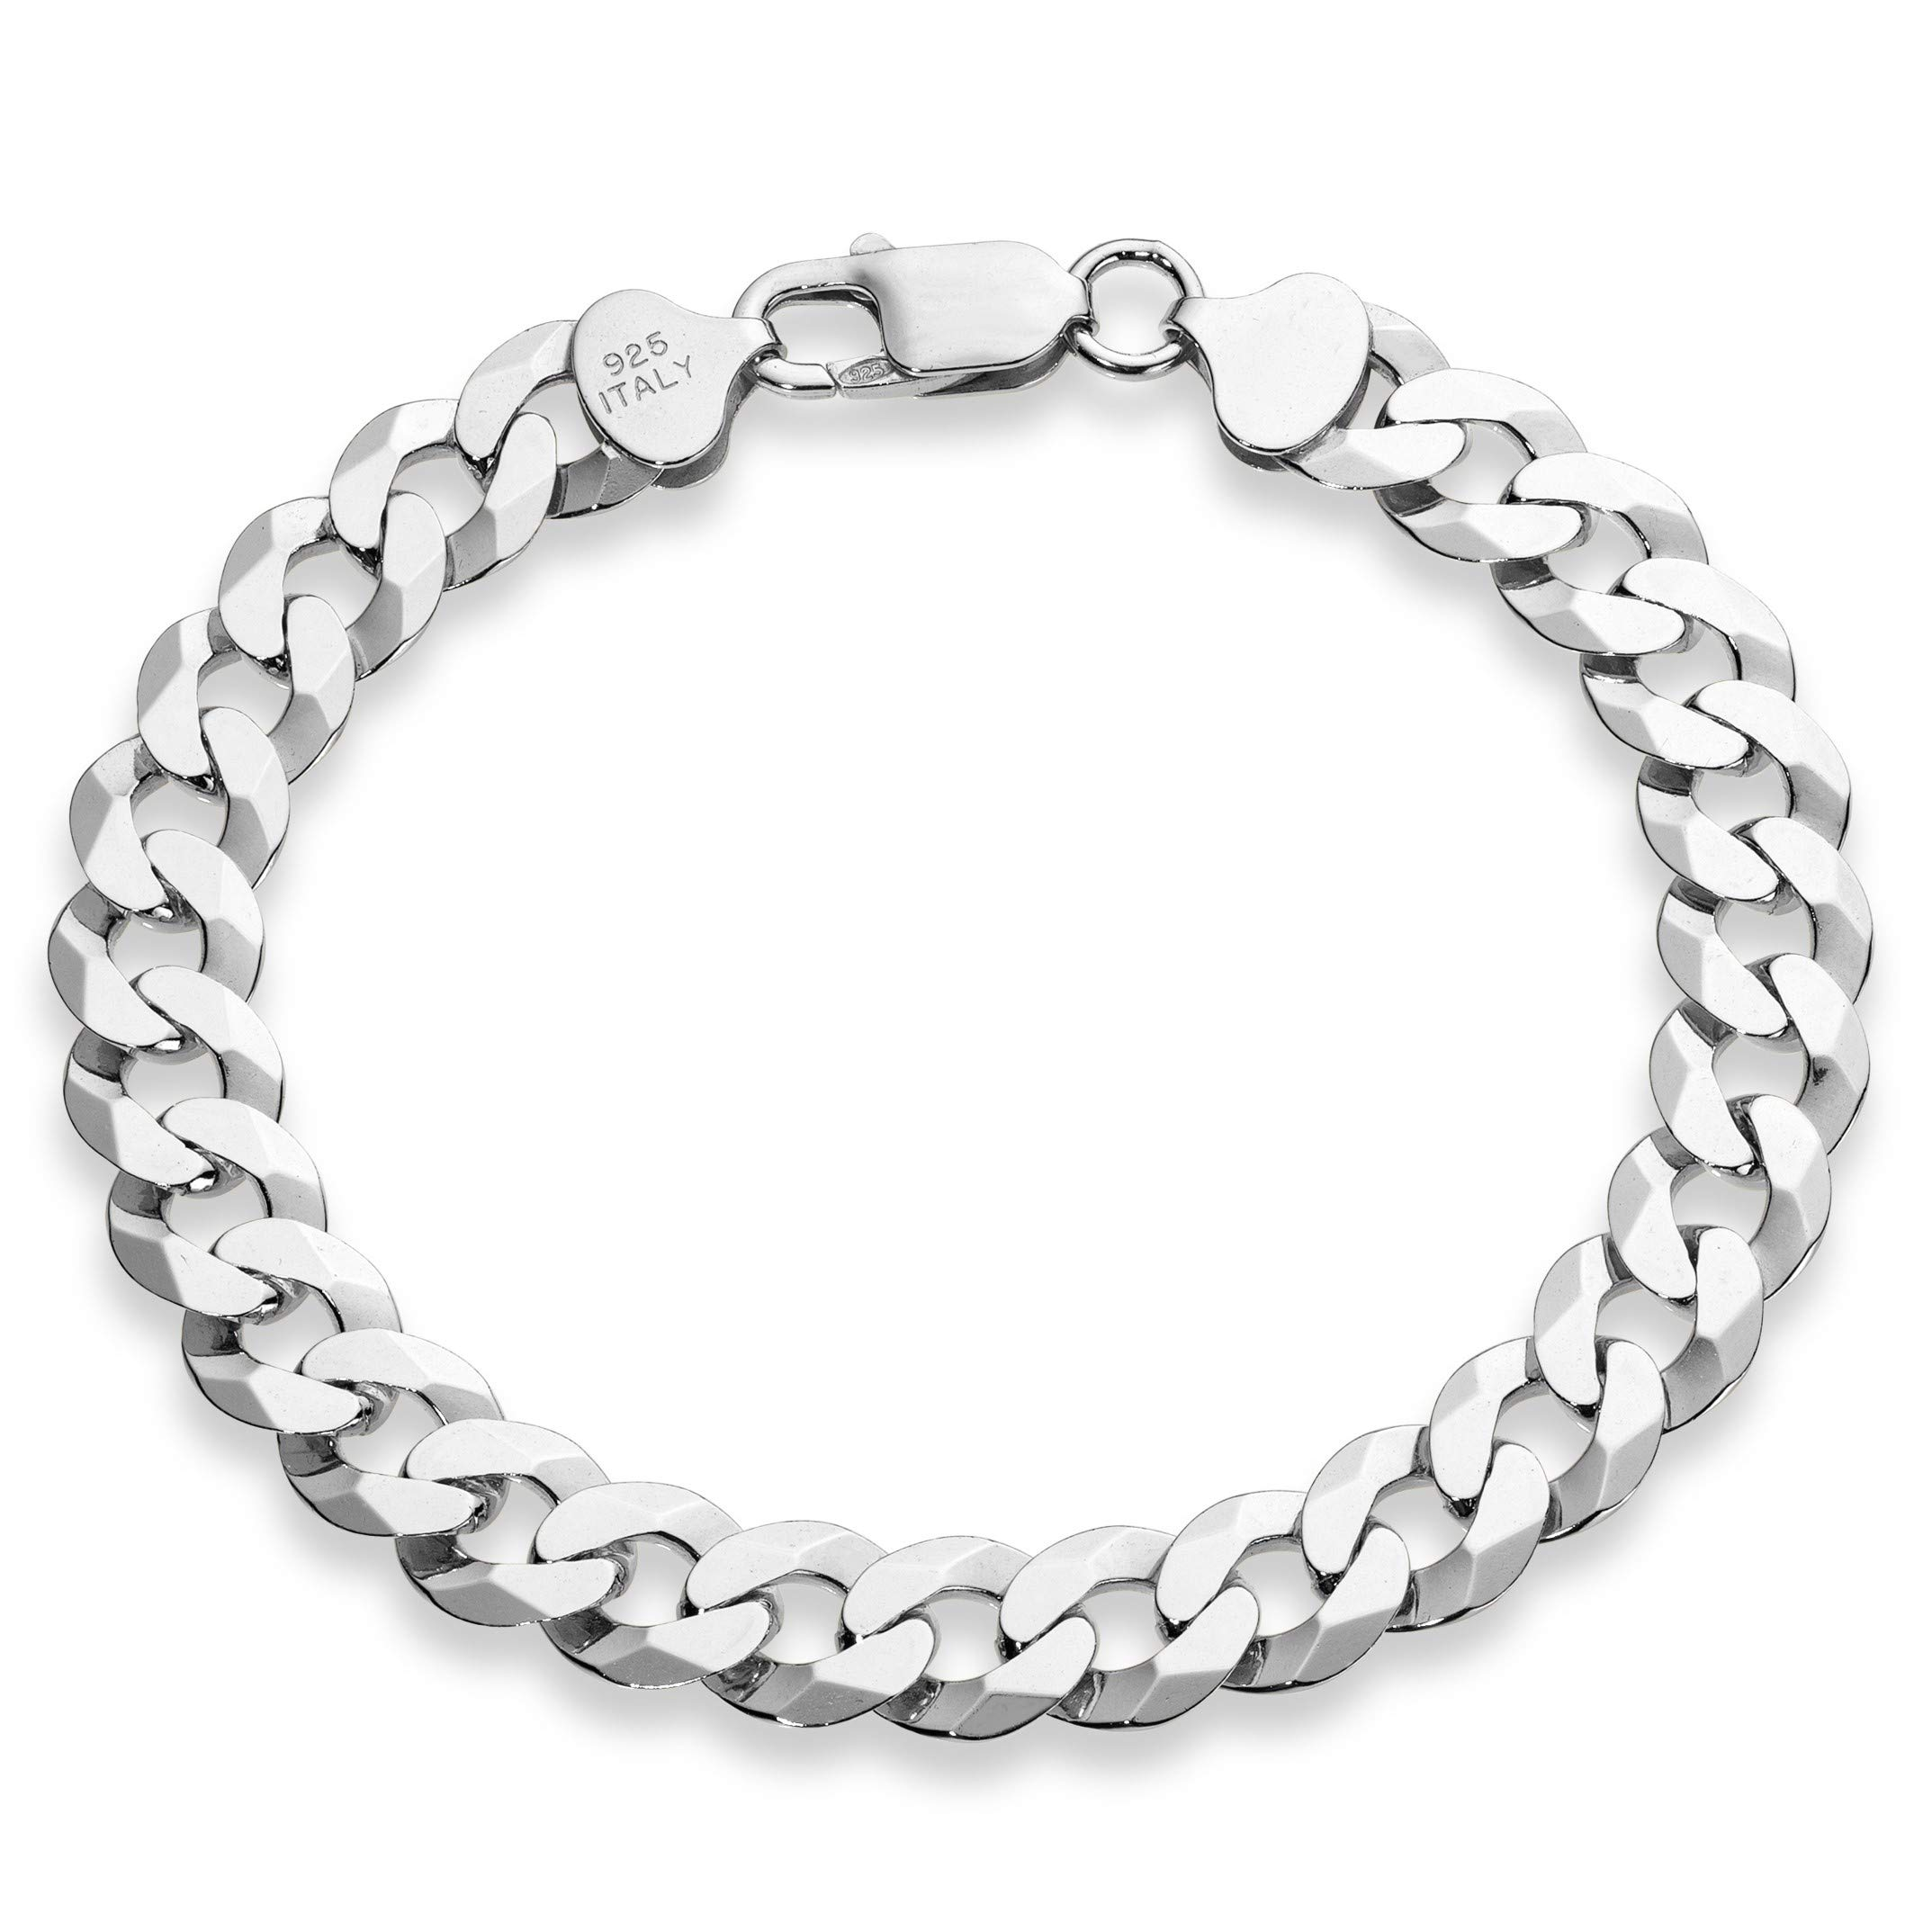 MiaBella 925 Sterling Silver Italian 9mm Solid Diamond-Cut Cuban Link Curb Chain Bracelet, 8'', 8.5'', 9'' Jewelry for Men (8)